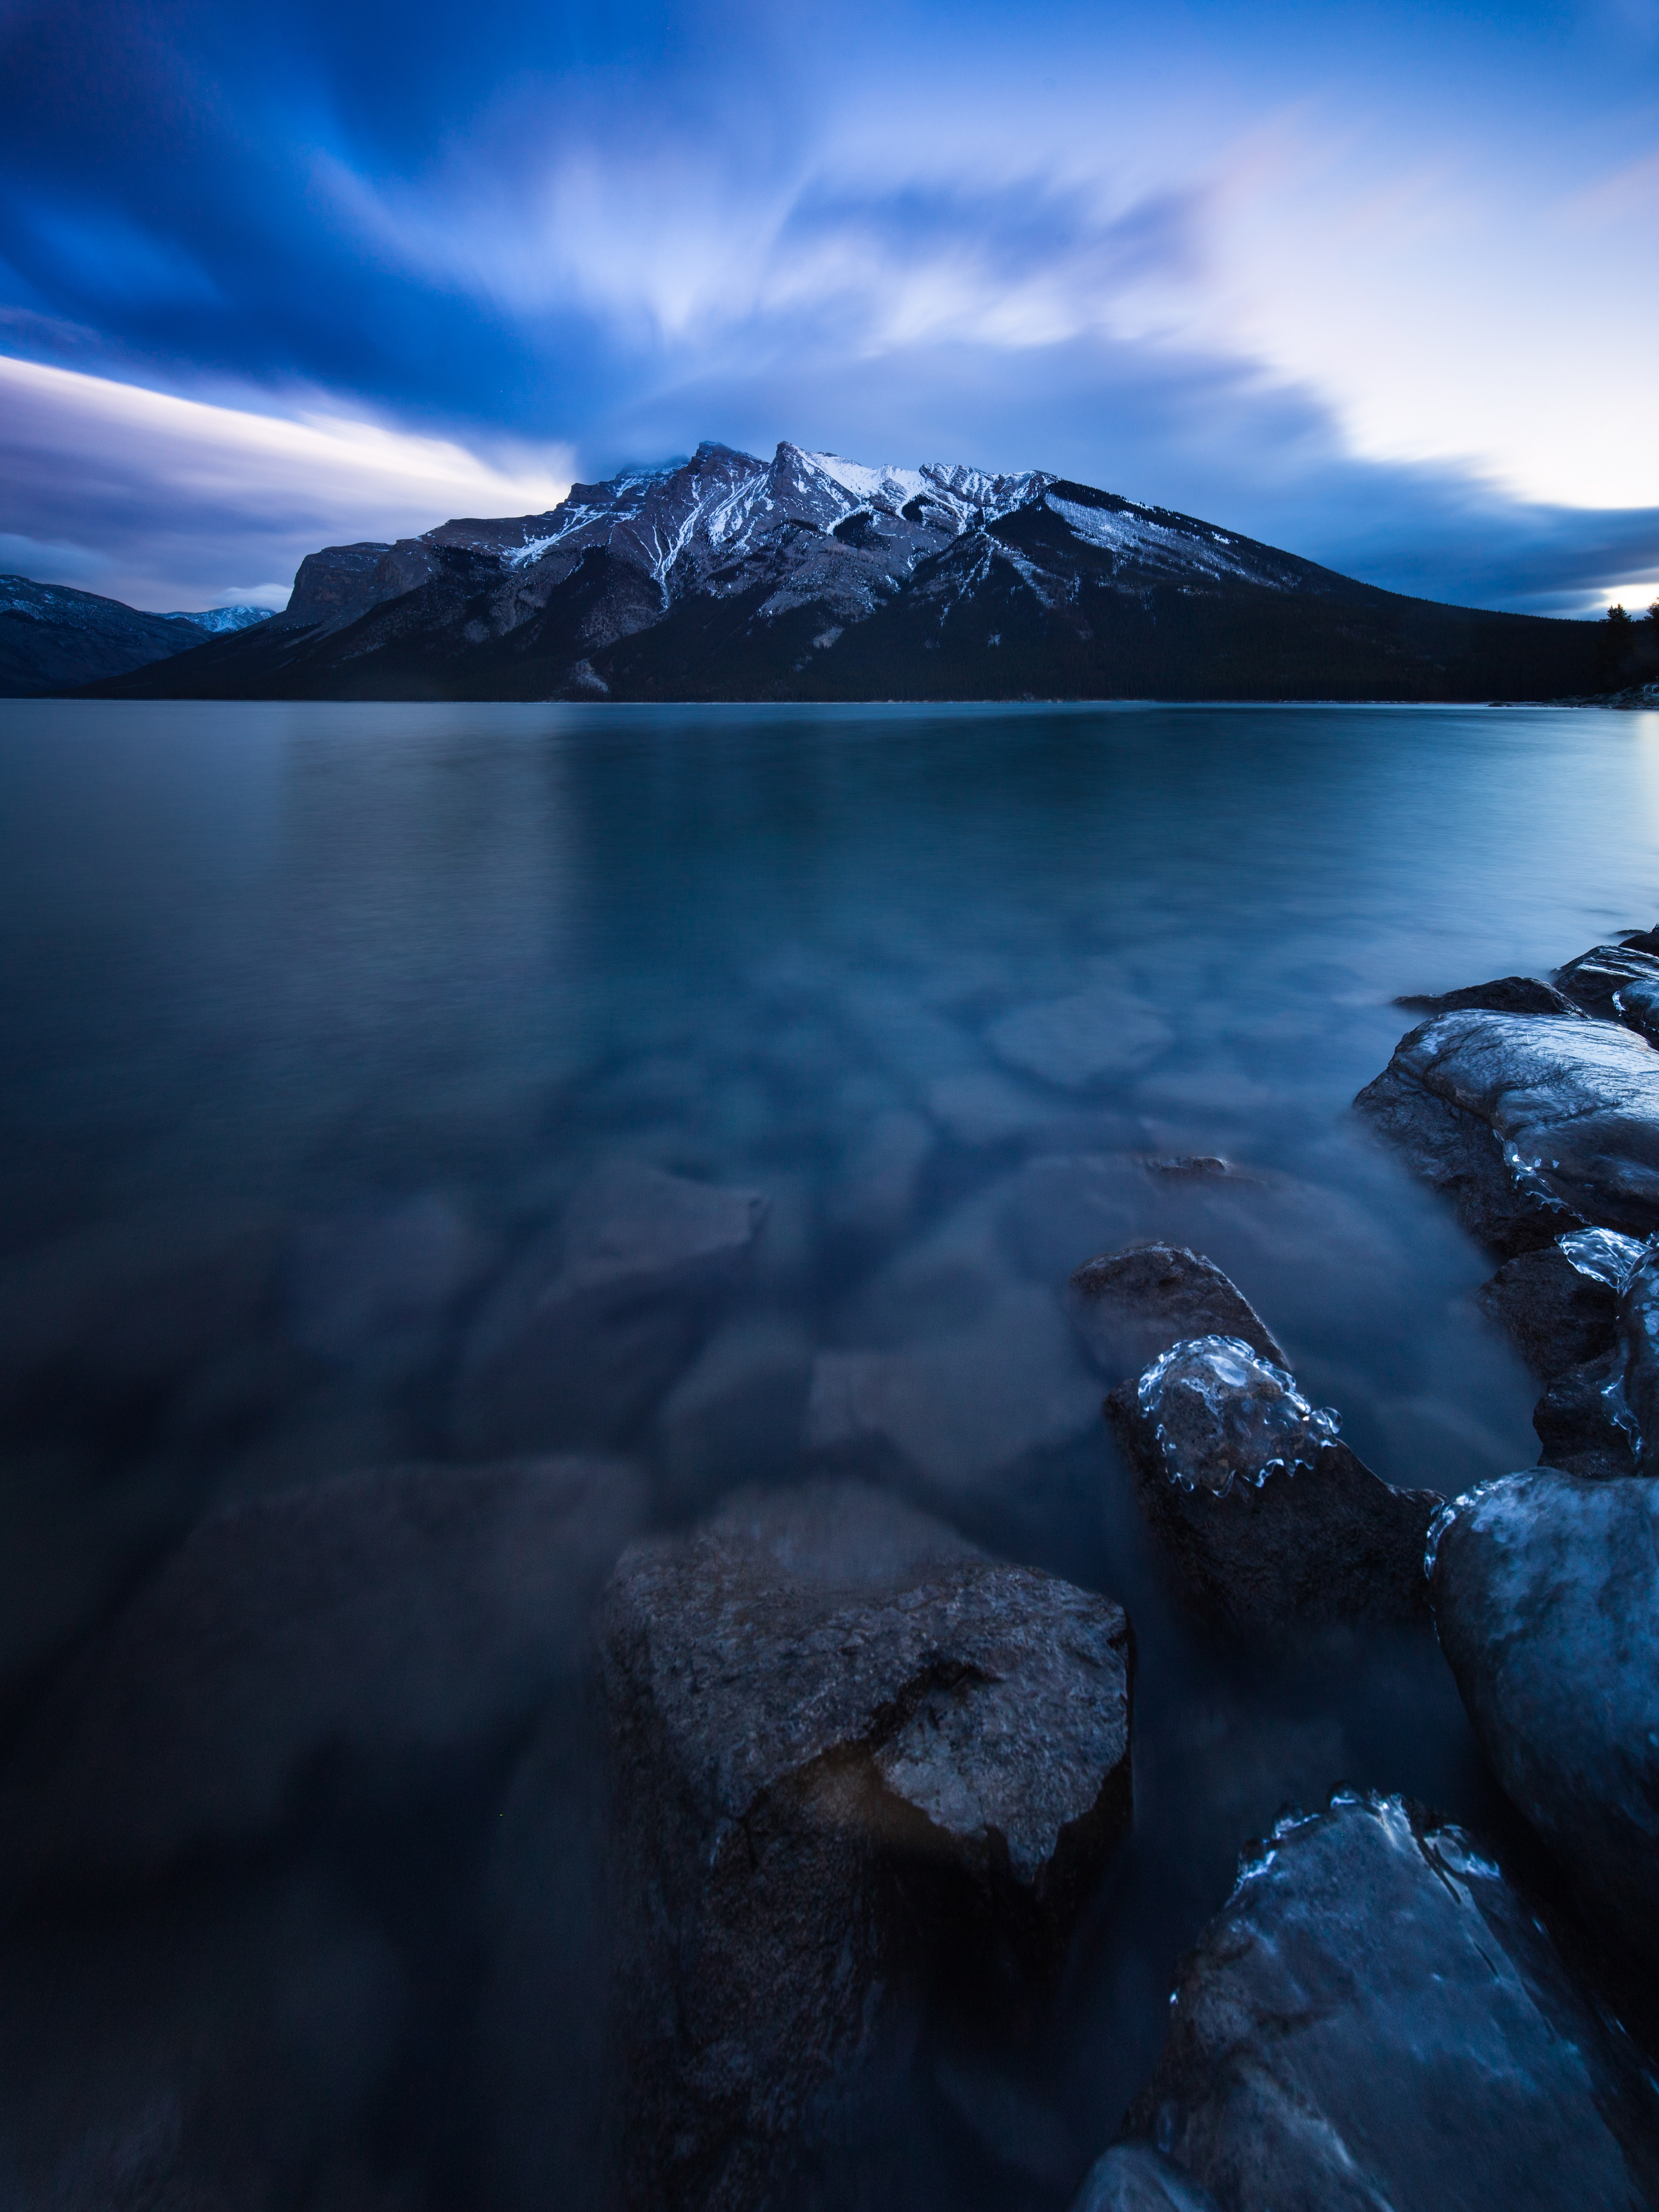 85173 free wallpaper 720x1280 for phone, download images Nature, Mountains, Lake, Canada, Minnevanka 720x1280 for mobile